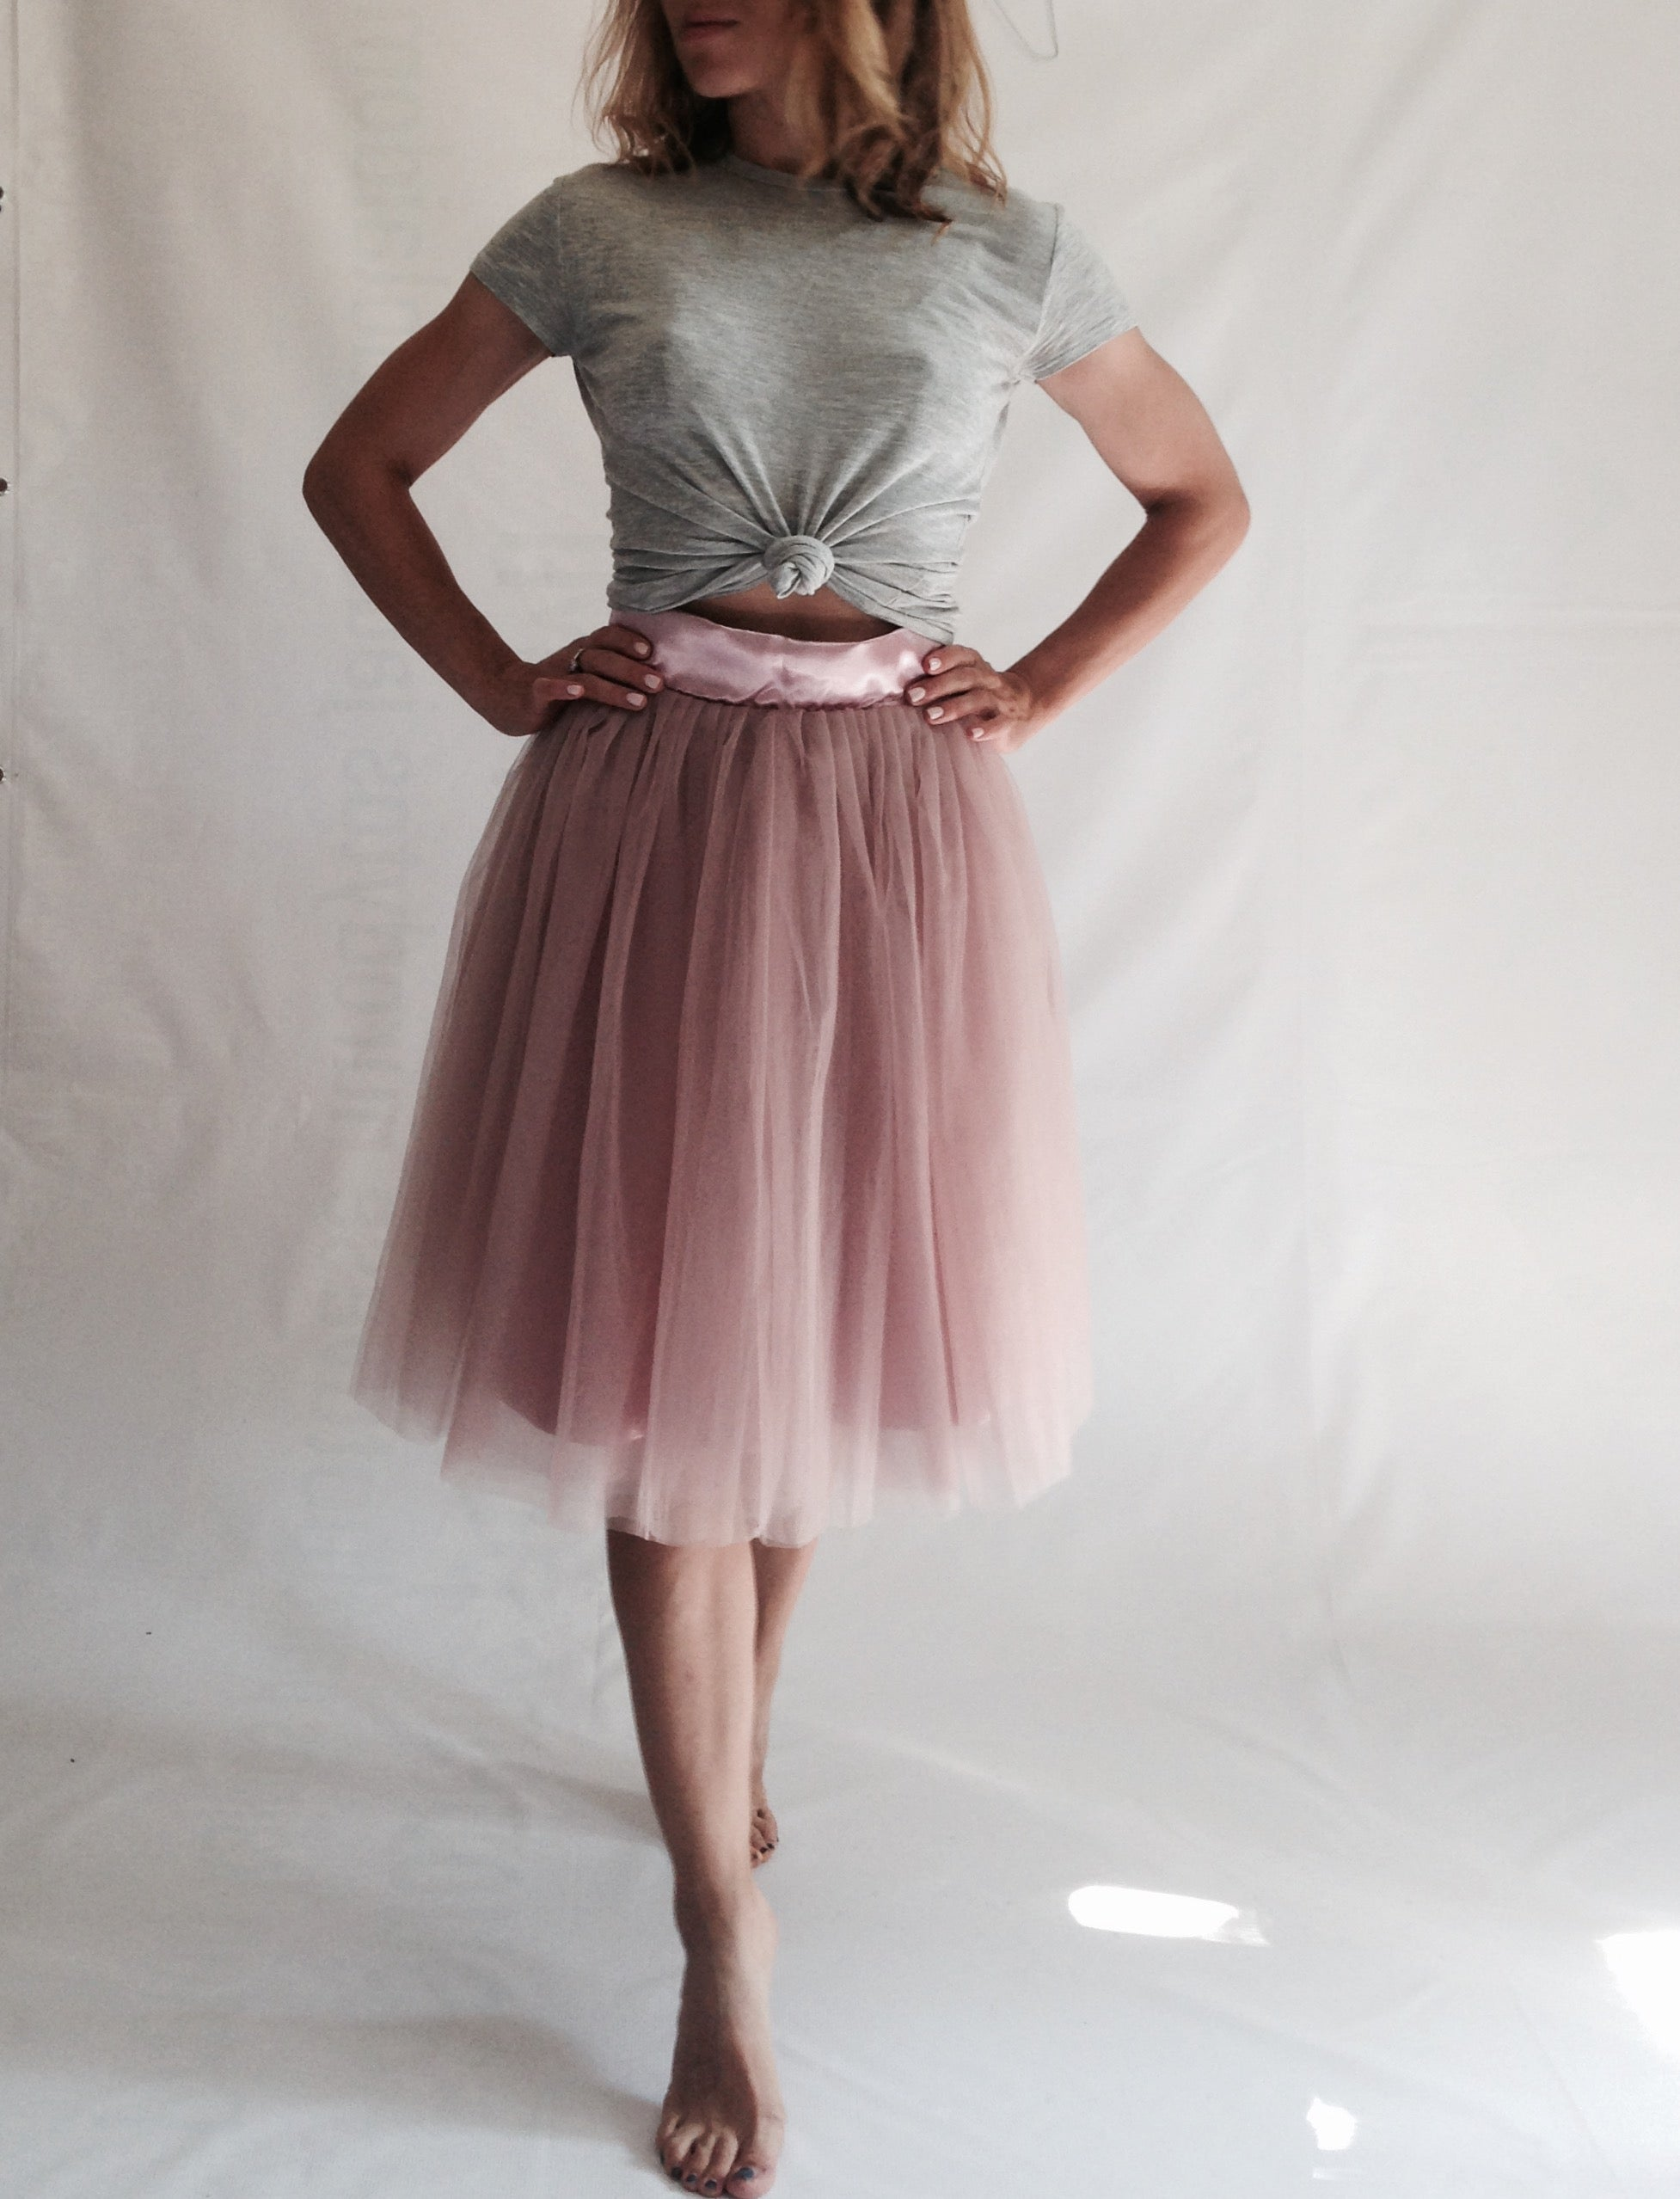 Dusty Pink 6 Layers Tulle Tutu Midi Skirt, SIZE S - secondfirst